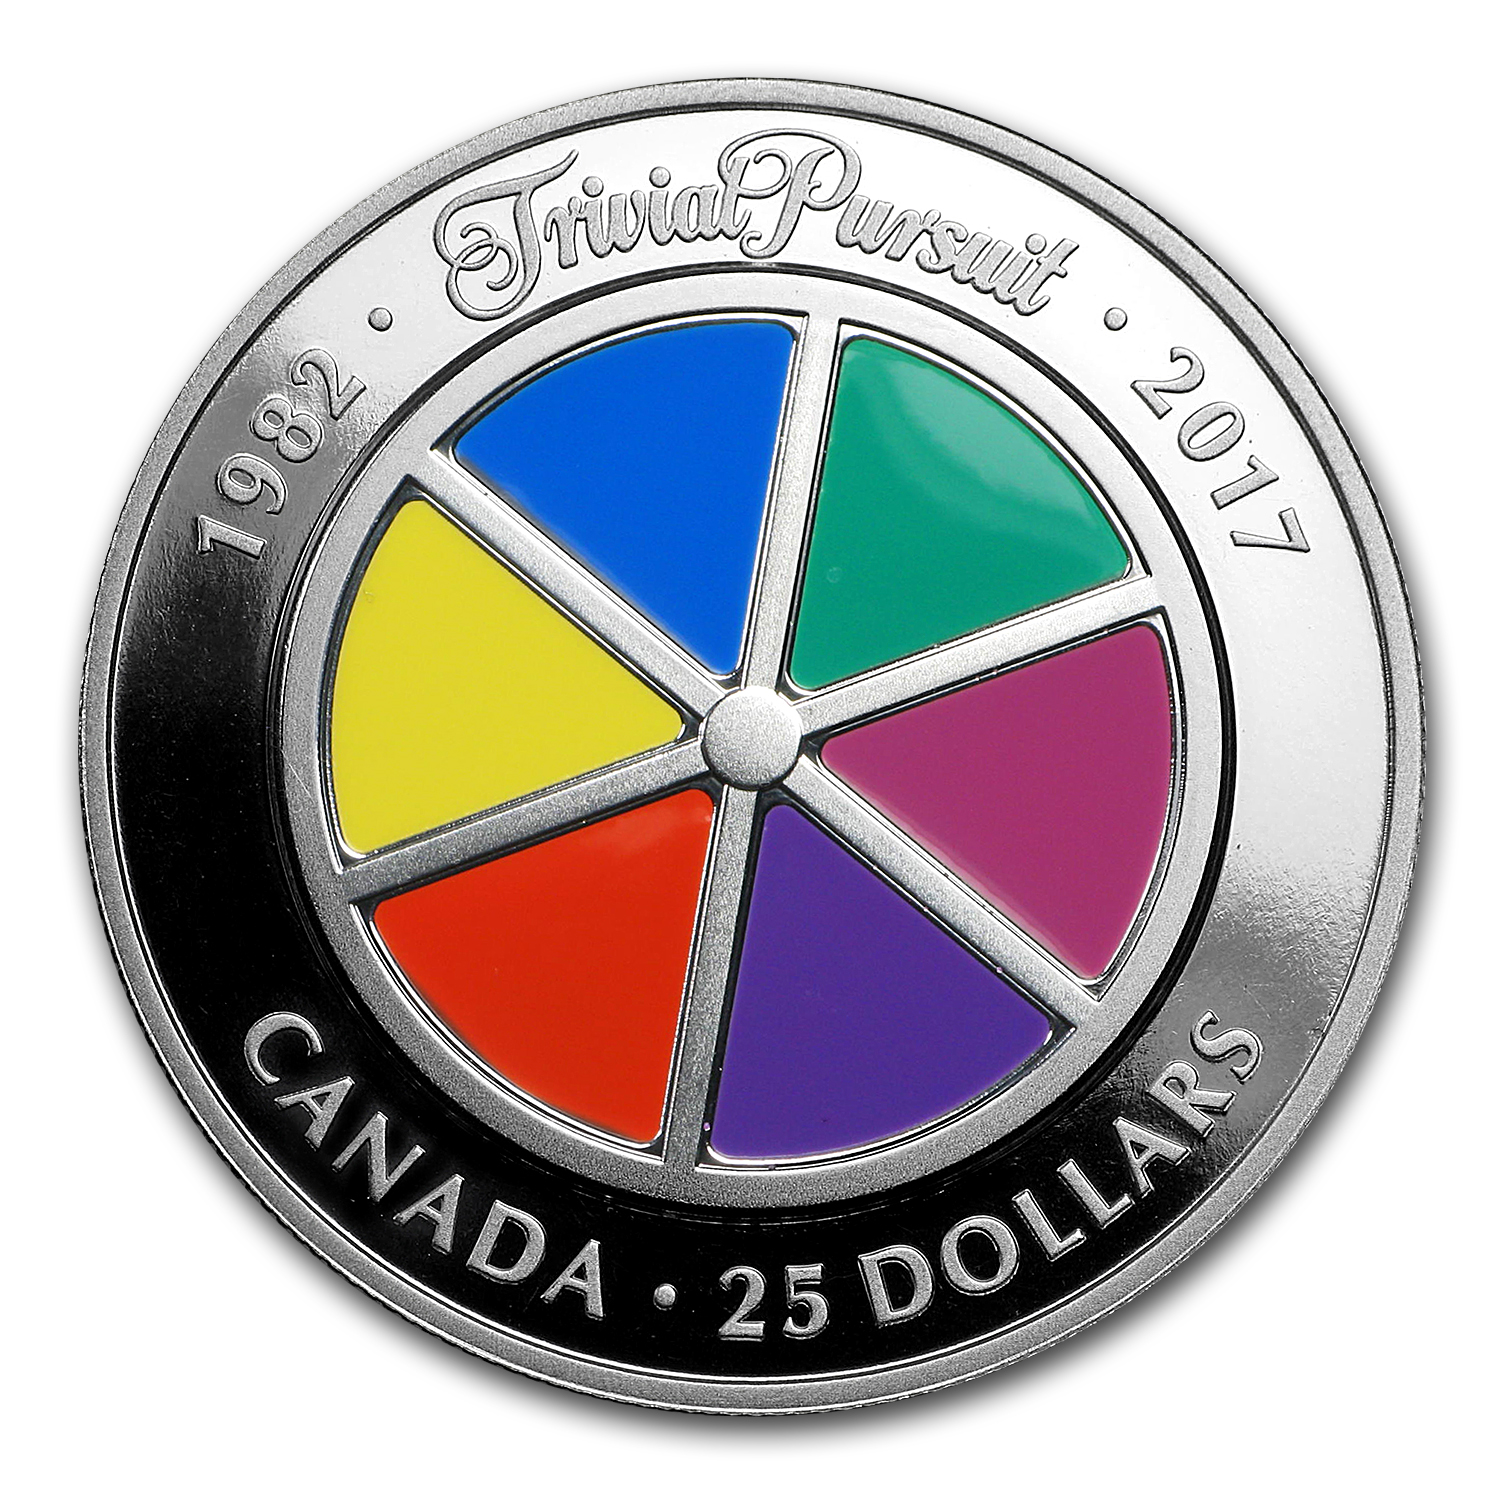 2017 Canada 1 oz Proof Silver $25 Trivial Pursuit